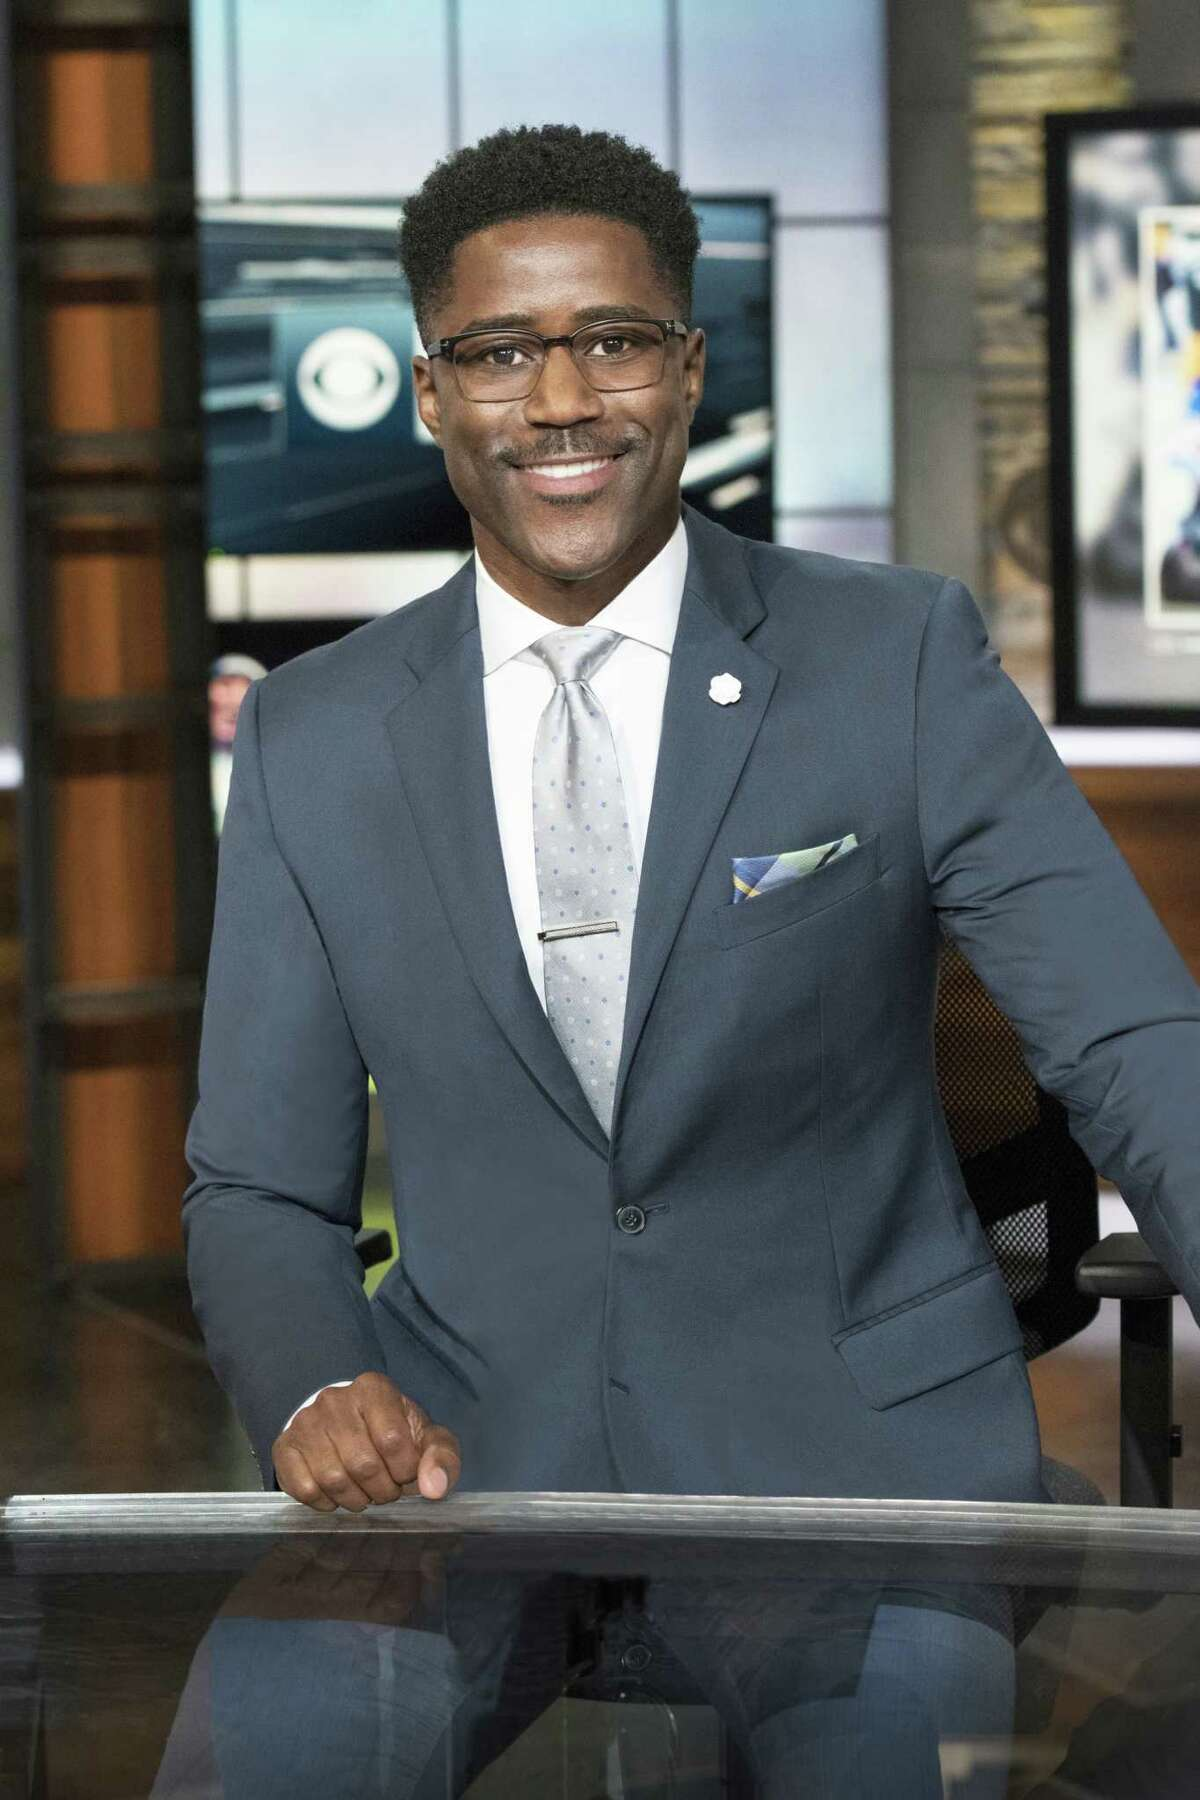 NFL TODAY Analyst Nate Burleson Photo: John Paul Filo/CBS c.2017 CBS Broadcasting Inc. All Rights Reserved.